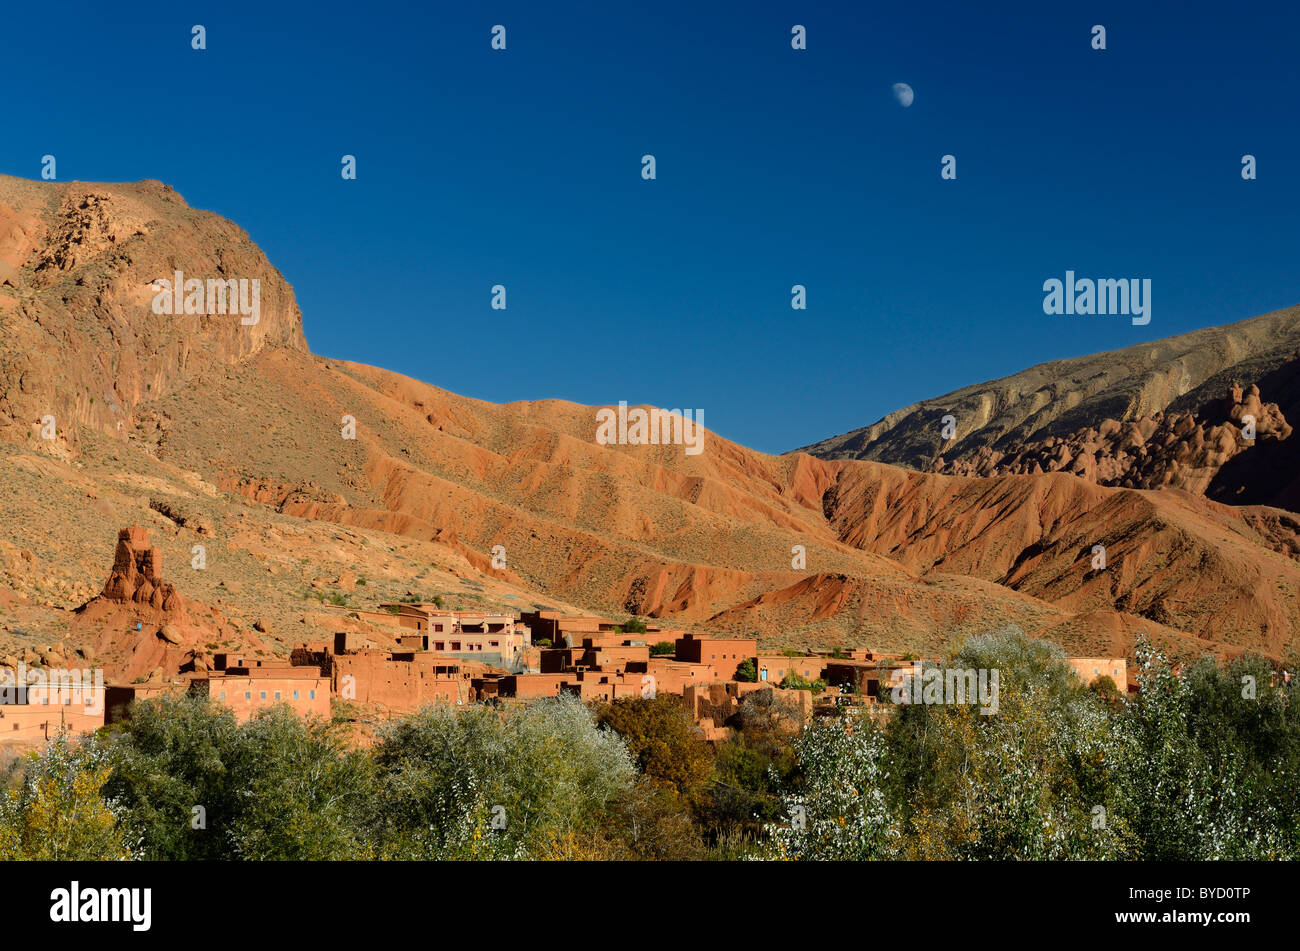 Moon in blue sky over red soil and rock formations in Dades Gorge Morocco - Stock Image